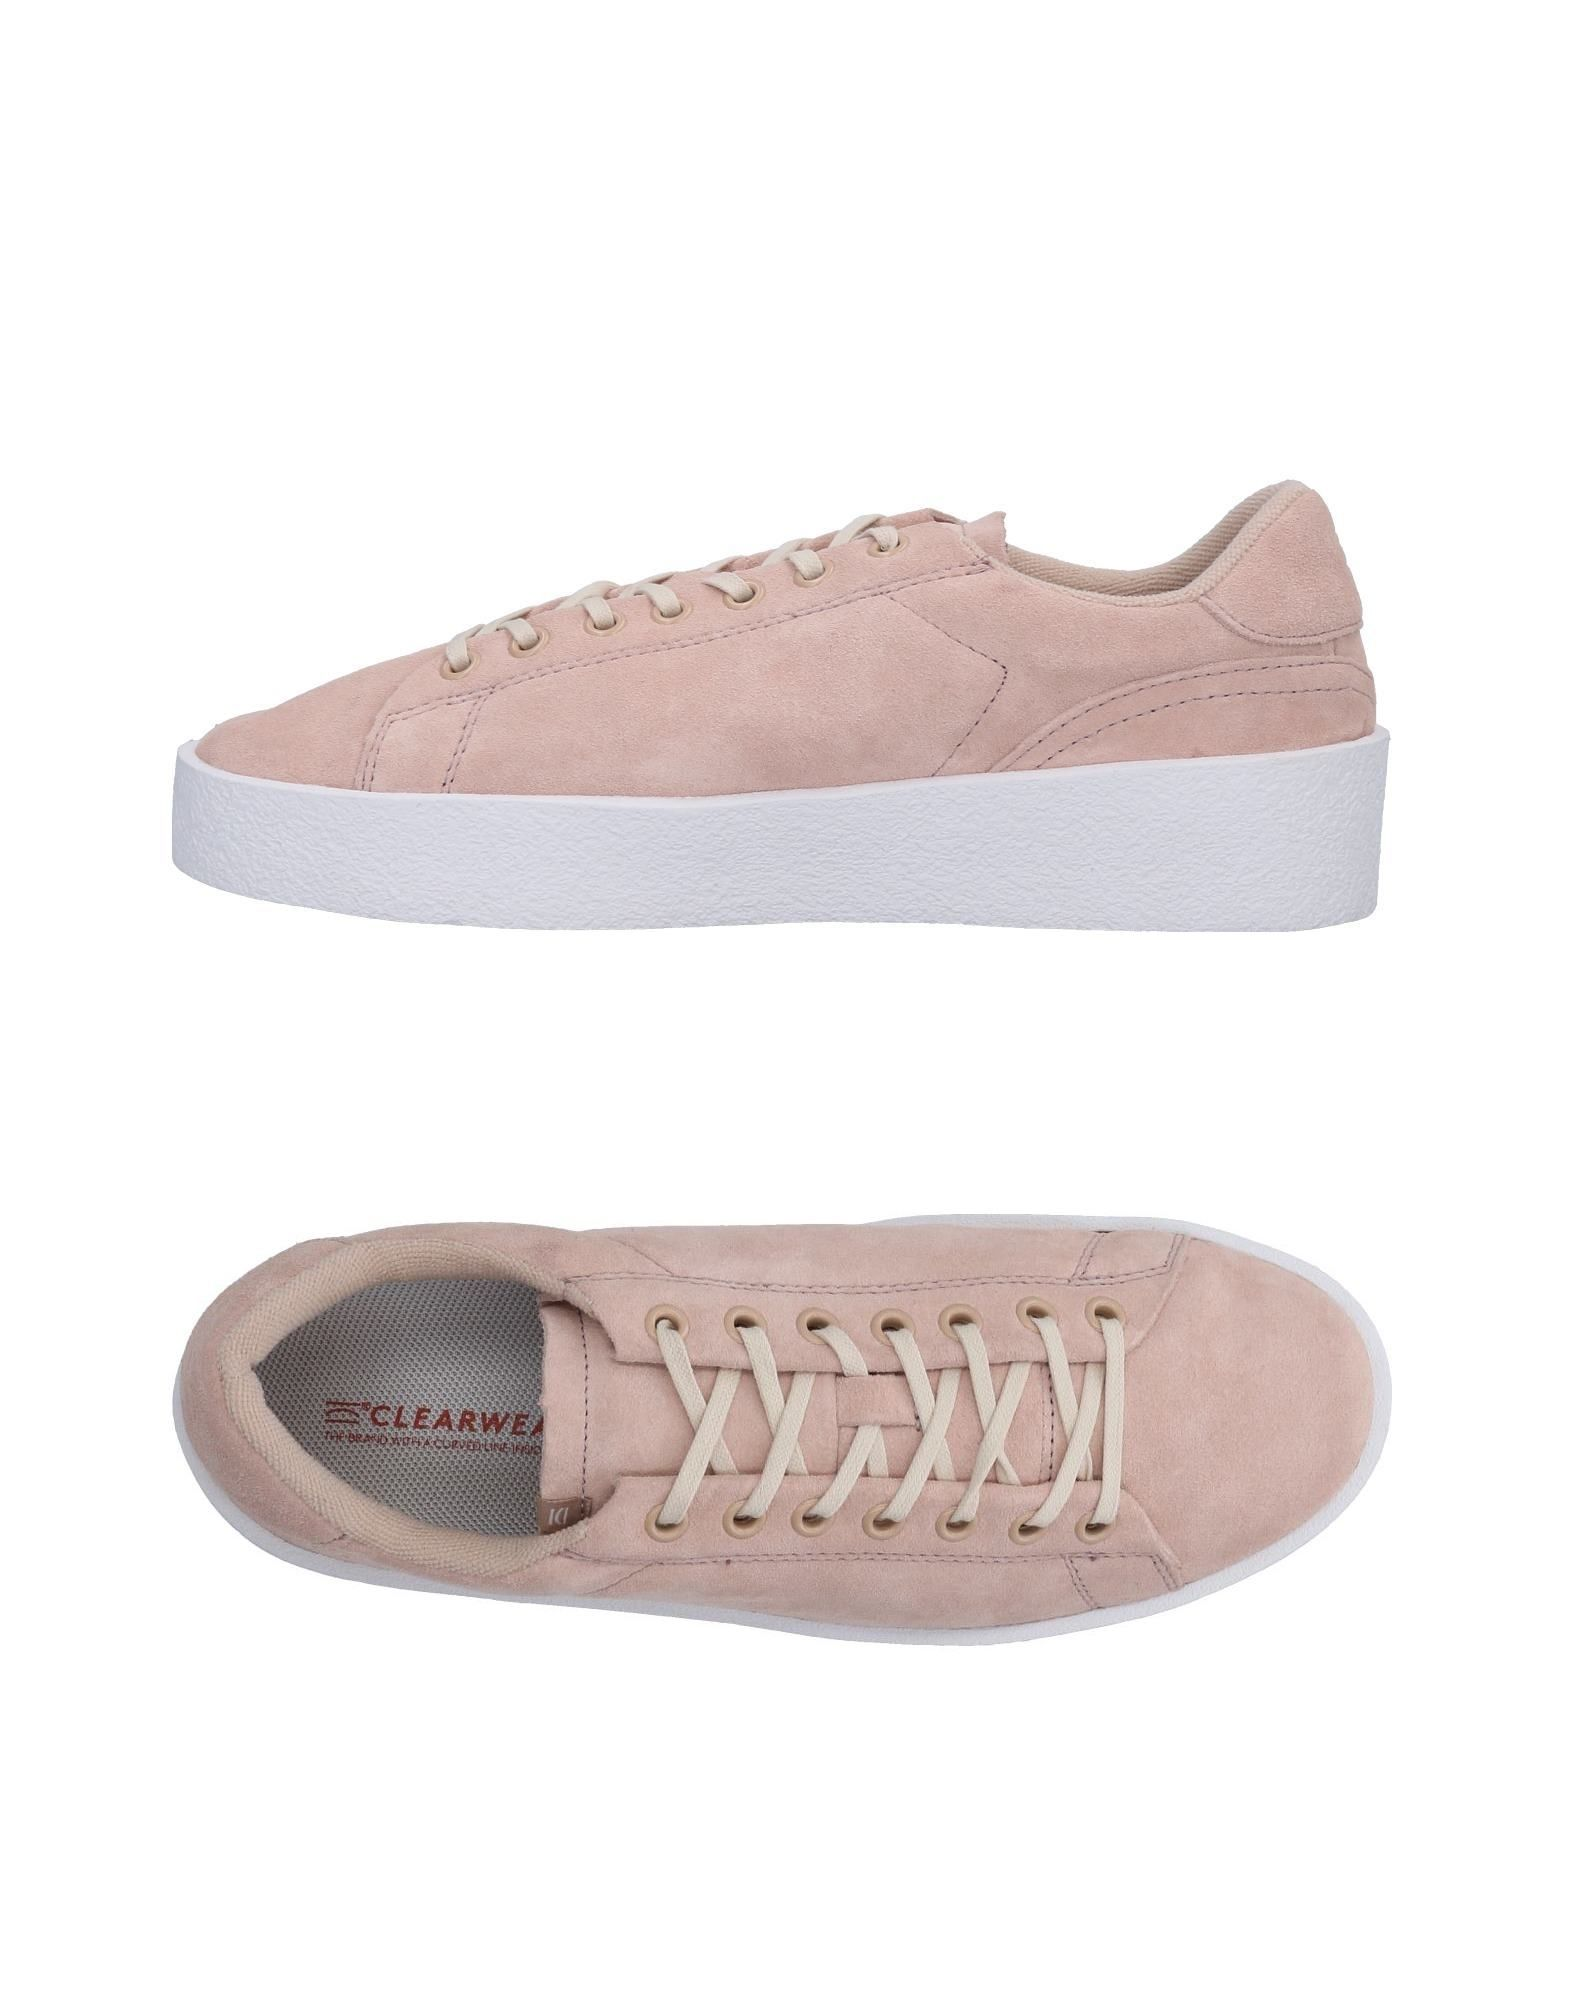 CLEAR WEATHER Sneakers in Pink